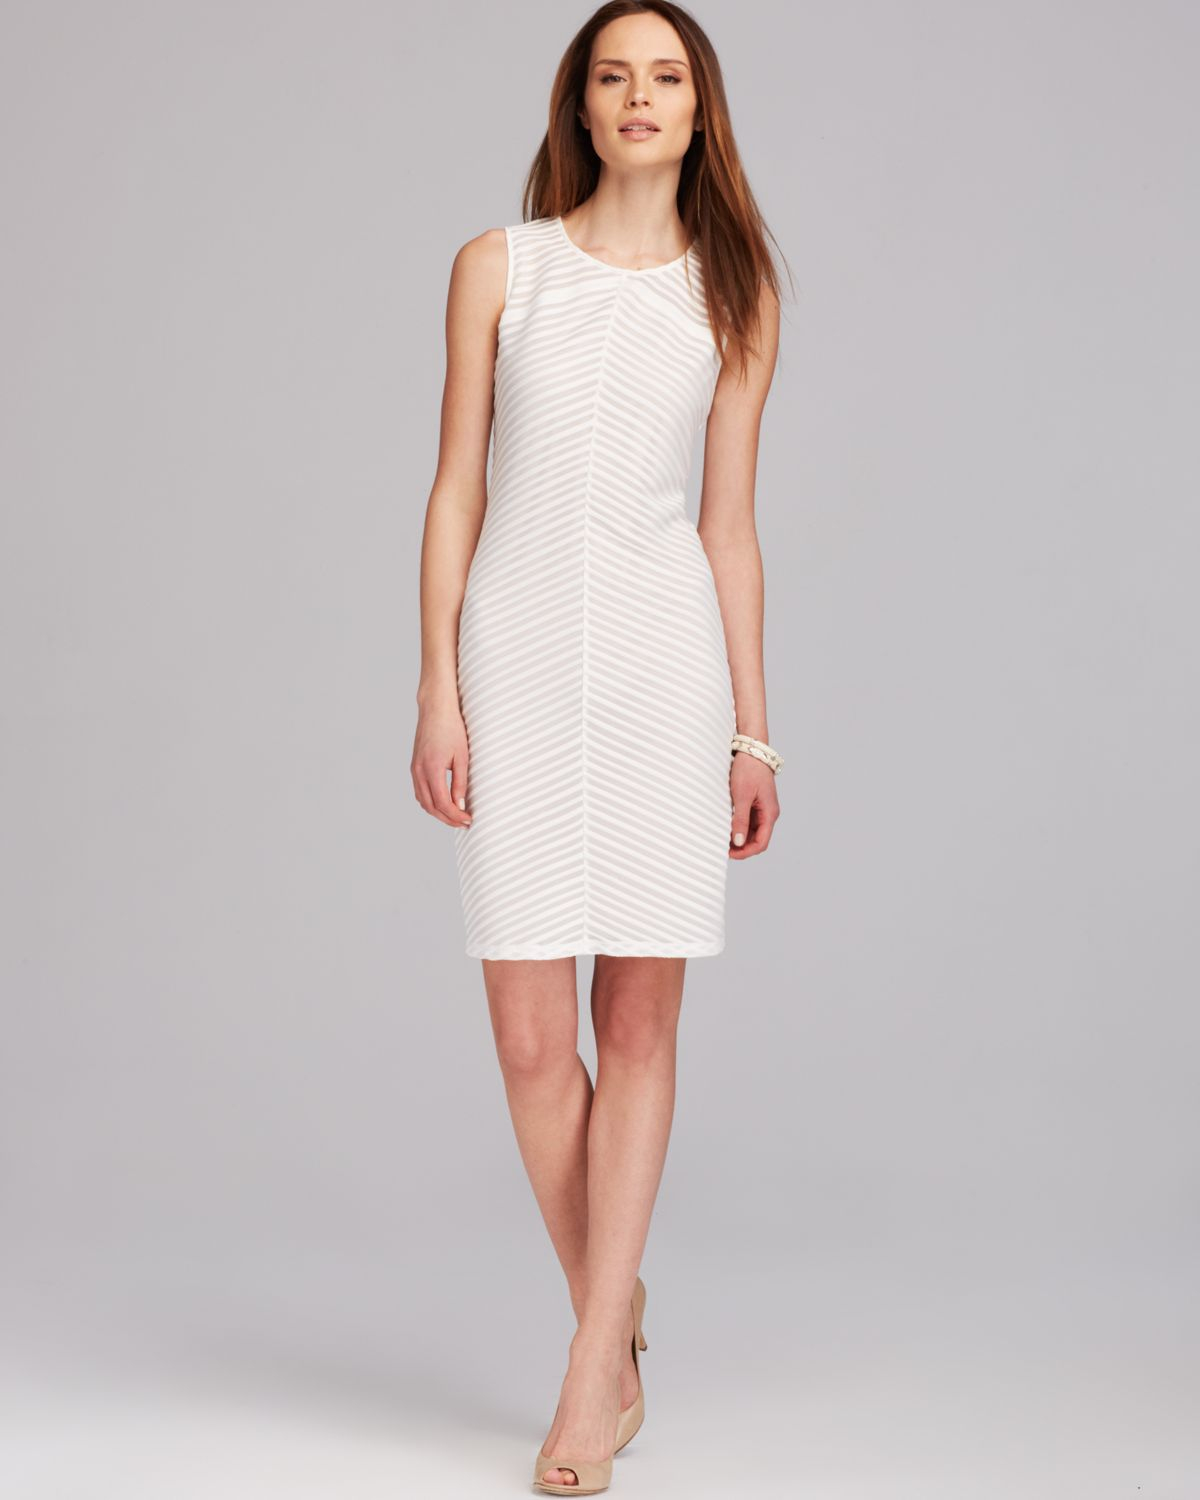 5dbd6fc699dec Lyst - Calvin Klein Sleeveless Striped Dress in White